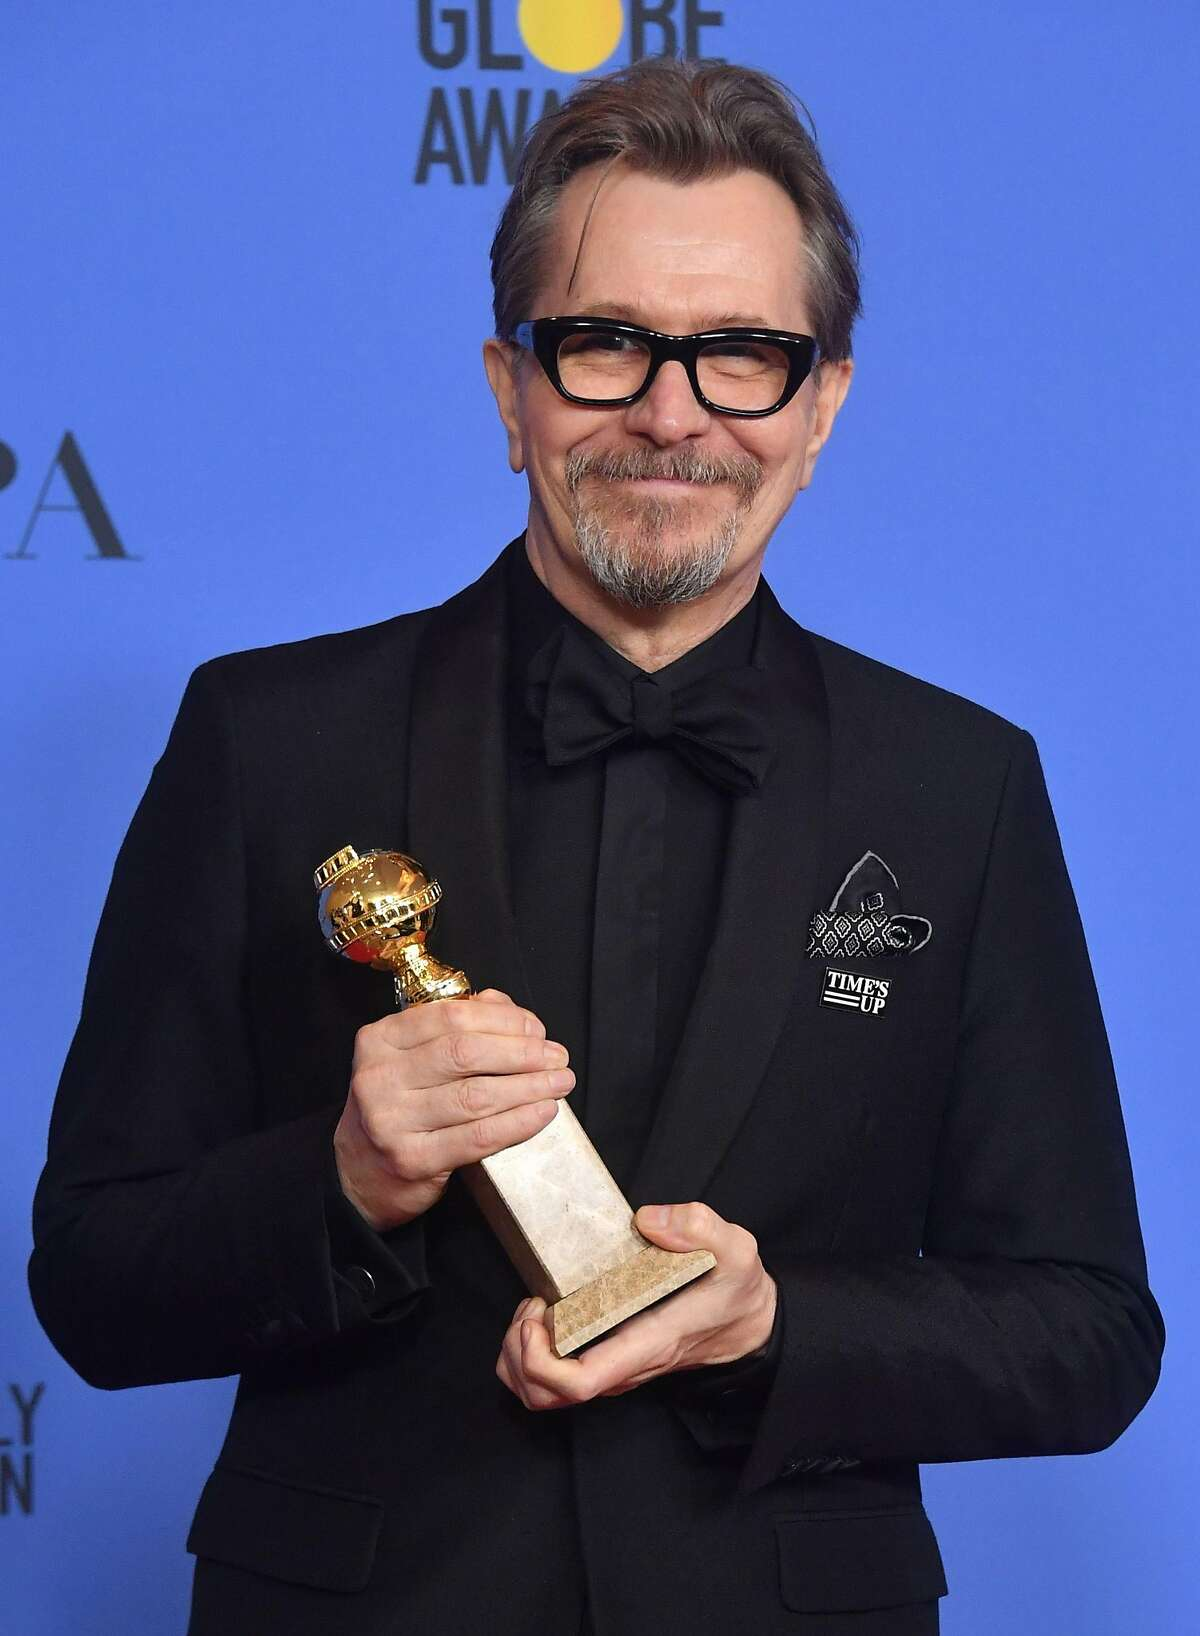 Actor Gary Oldman poses with the trophy for Best Performance by an Actor in a Motion Picture - Drama during the 75th Golden Globe Awards on January 7, 2018, in Beverly Hills, California. / AFP PHOTO / Frederic J. BROWNFREDERIC J. BROWN/AFP/Getty Images